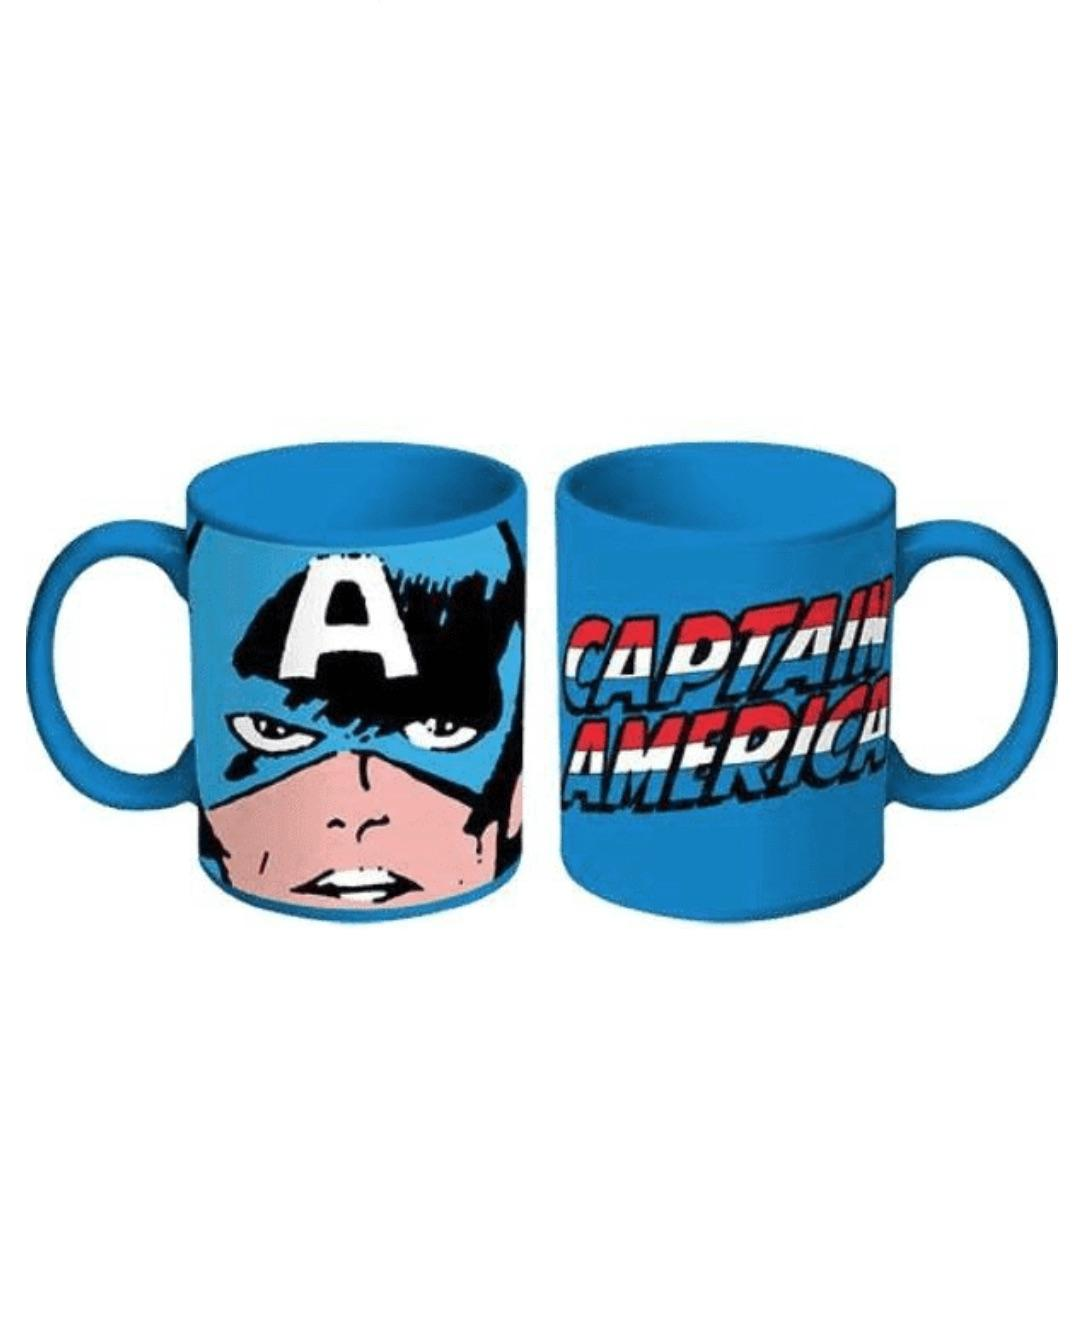 CAPTAIN AMERICA BLUE MUG